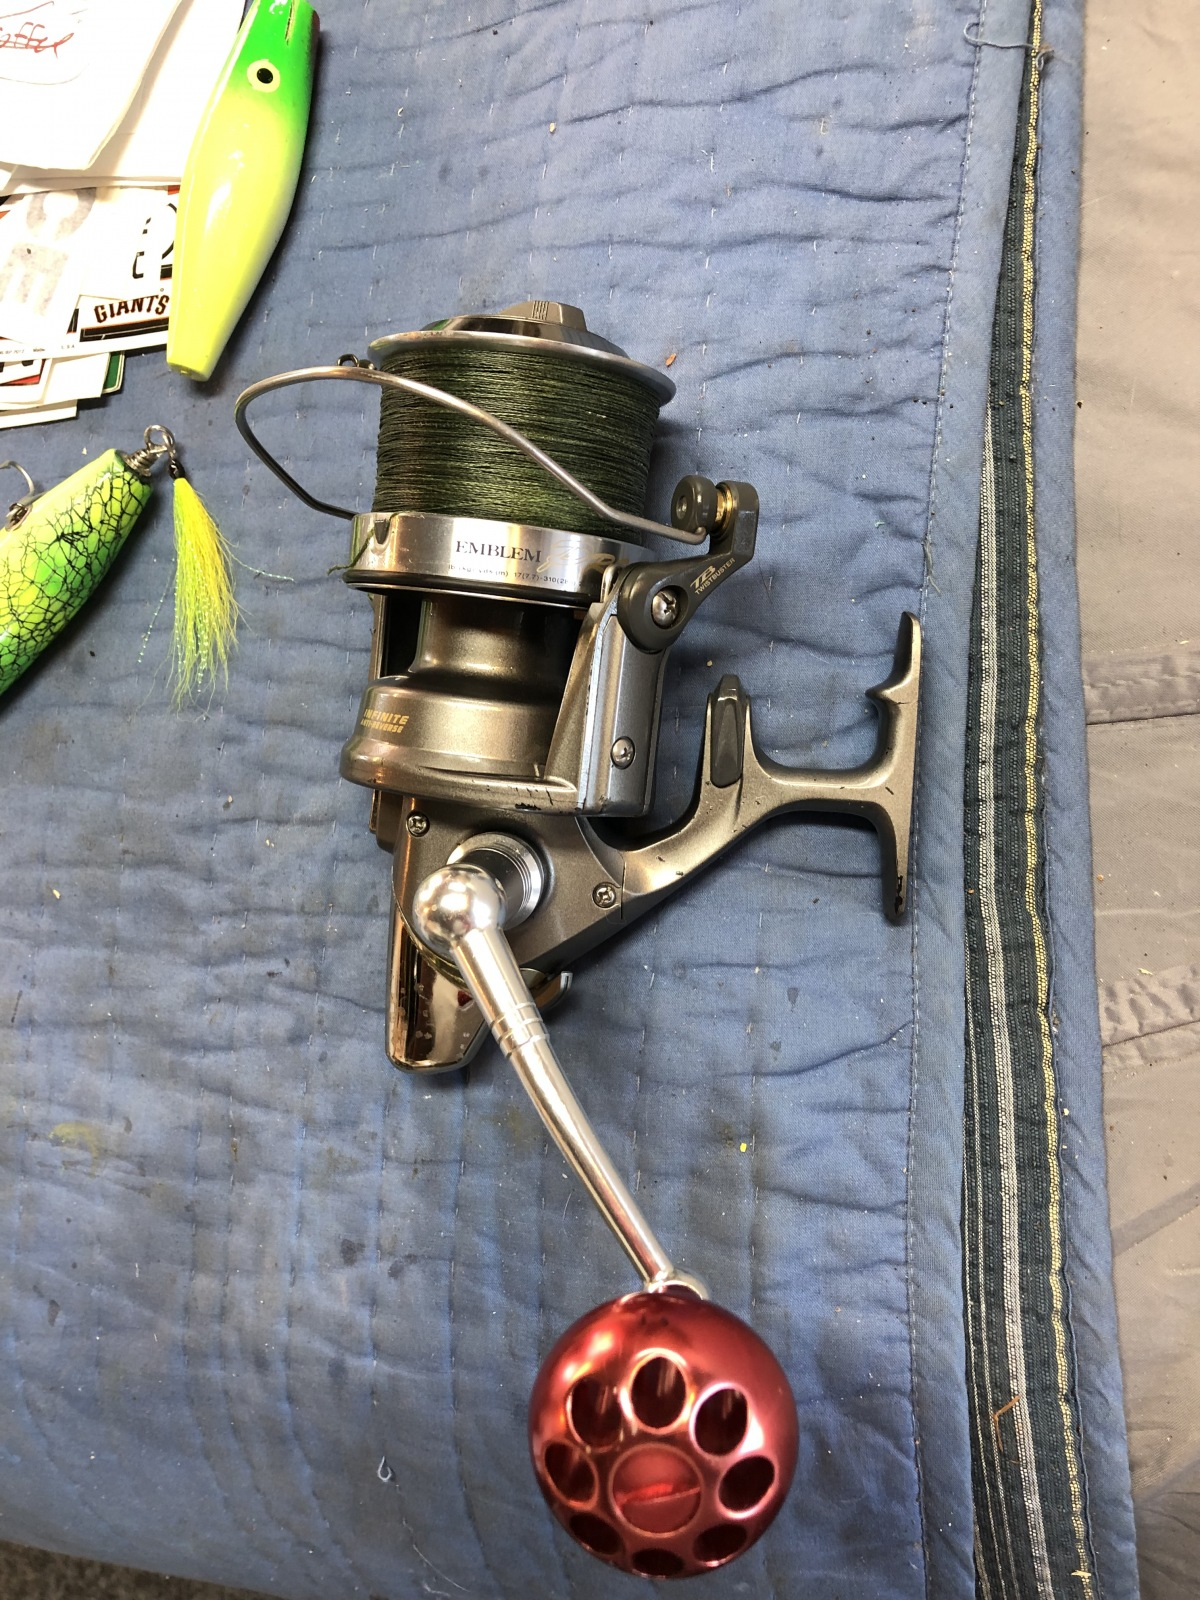 Daiwa Emblem Pro 5000 - General Buy/Sell/Trade Forum - SurfTalk